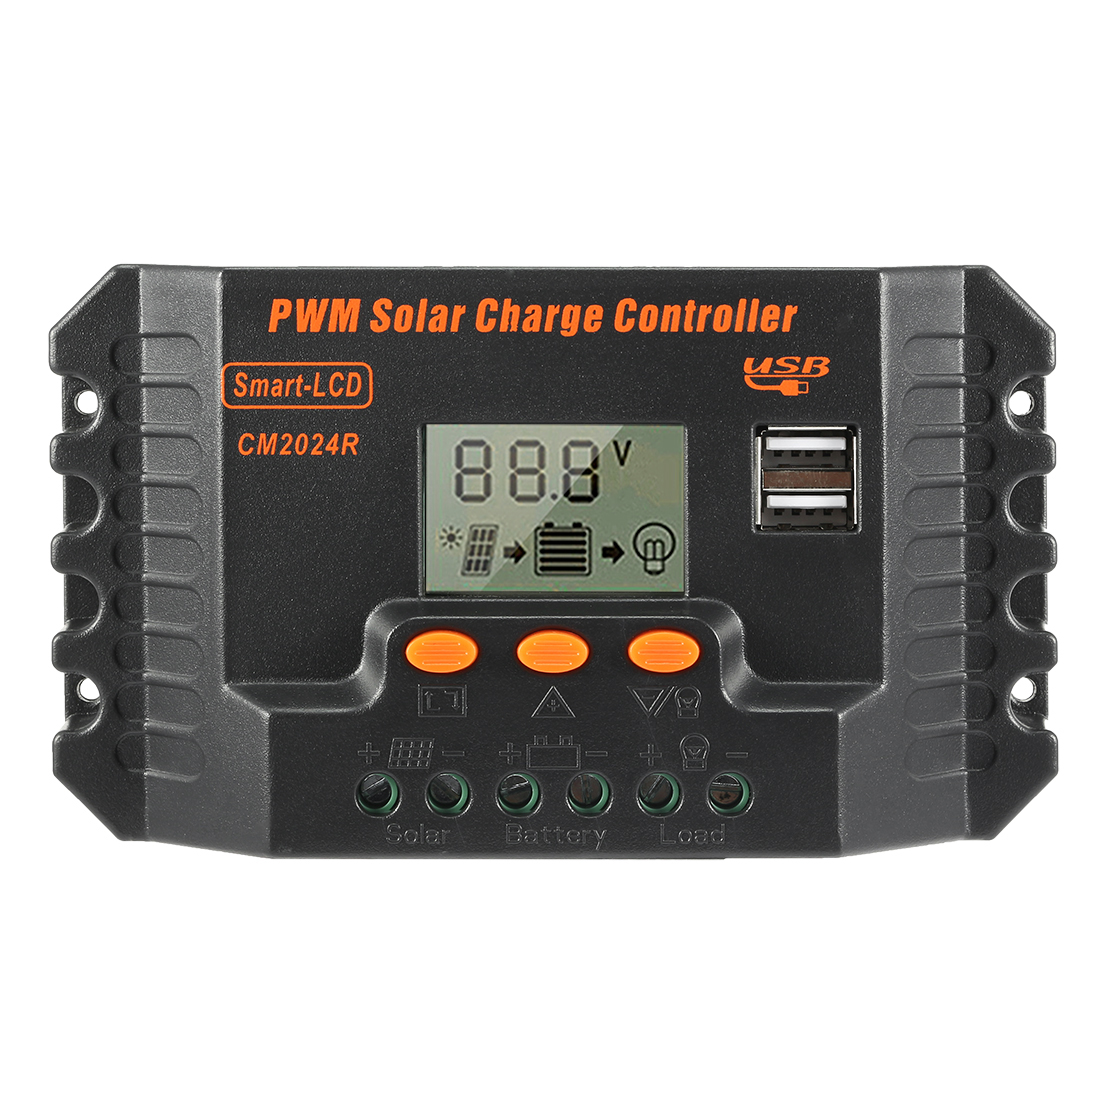 20A PWM Solar Charge Controller 12V-24V Regulator LCD Display Panel USB Charger